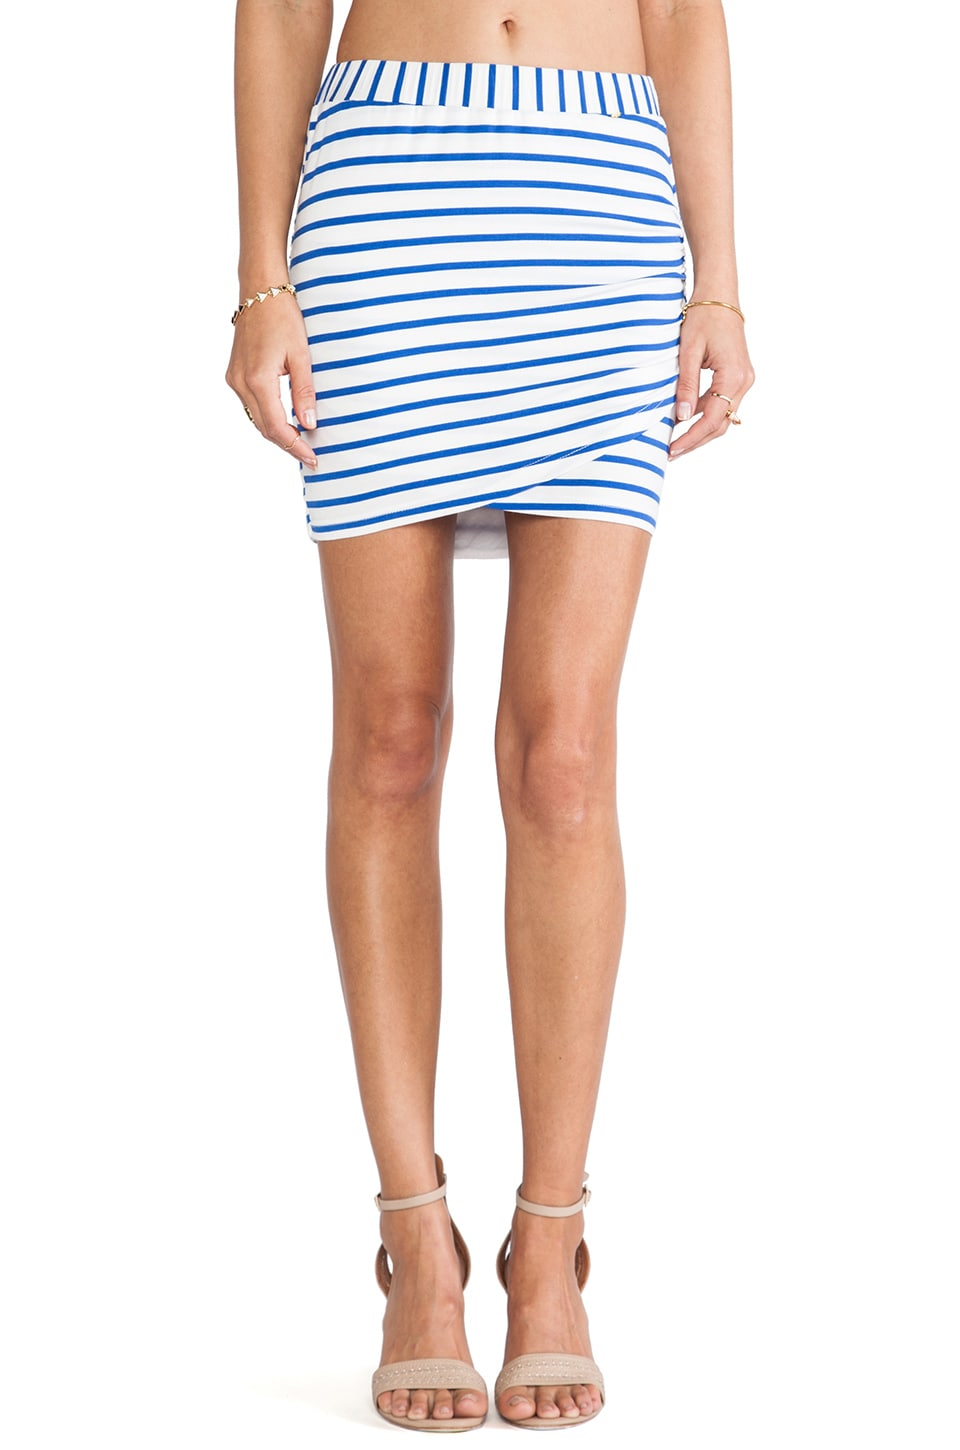 harlyn Stipped Wrap Skirt in Cobalt & White